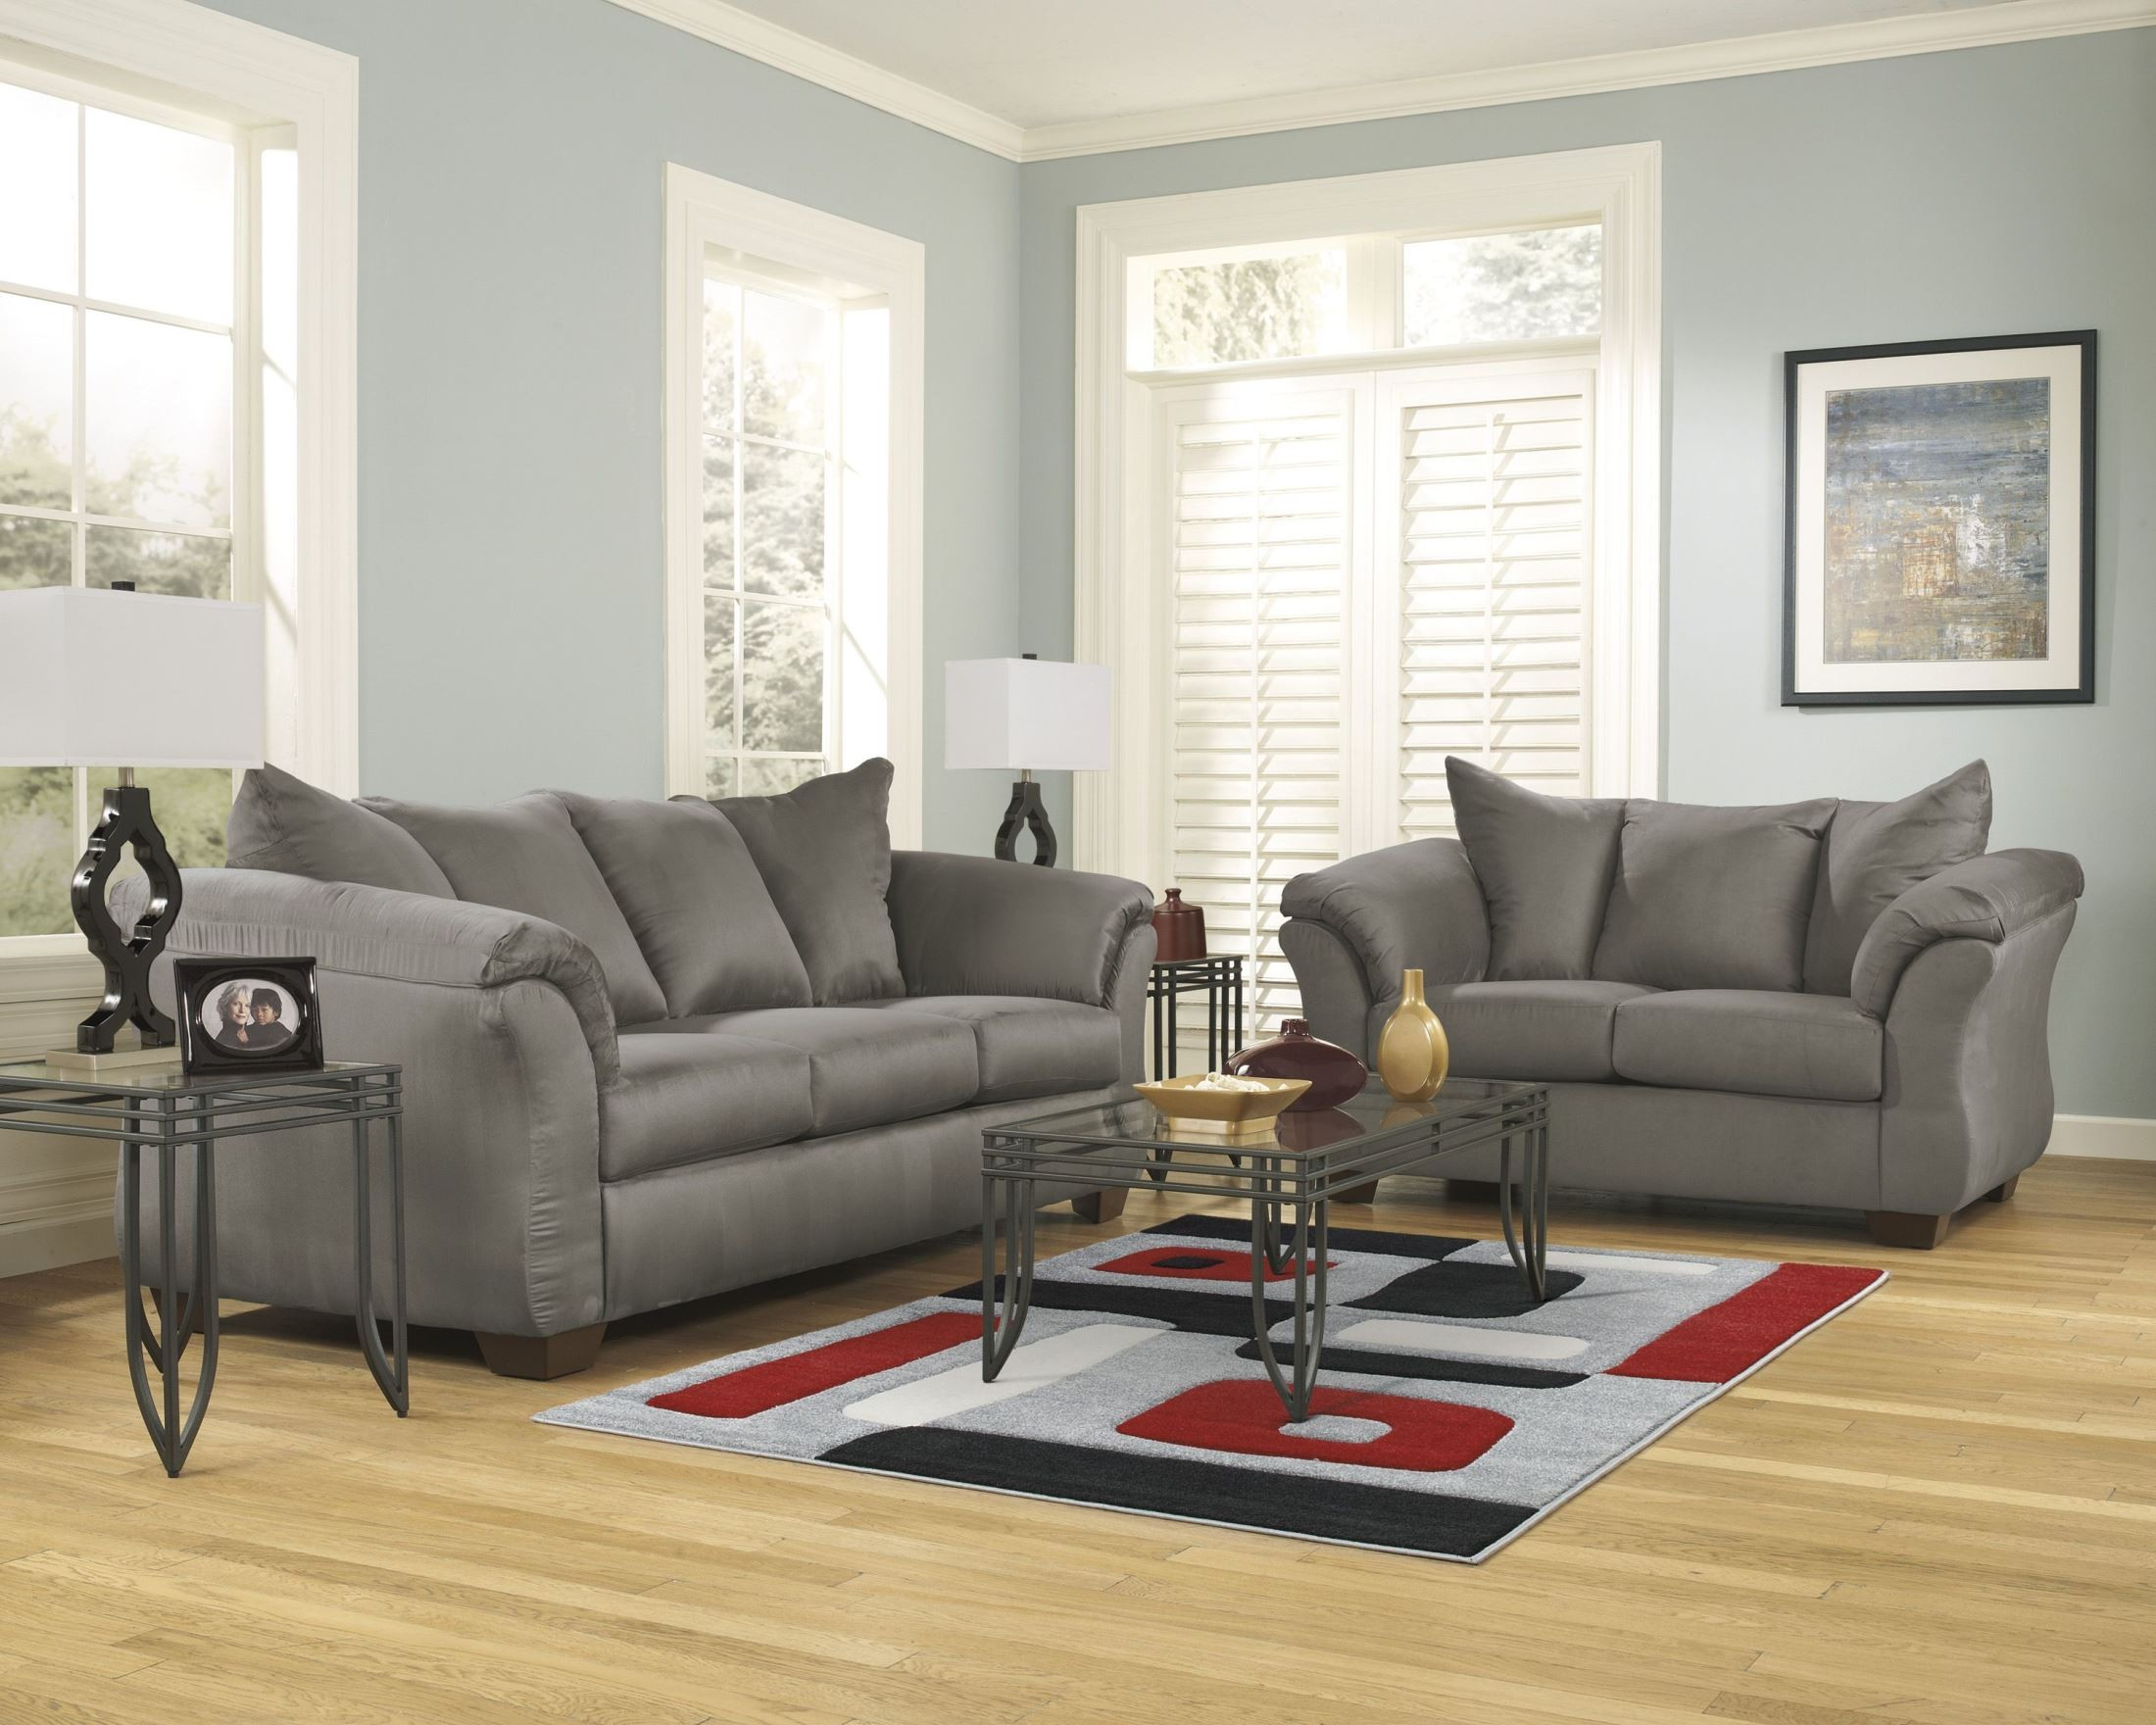 darcy cobblestone chaise sectional from ashley 7500518 On ashley durapella chaise